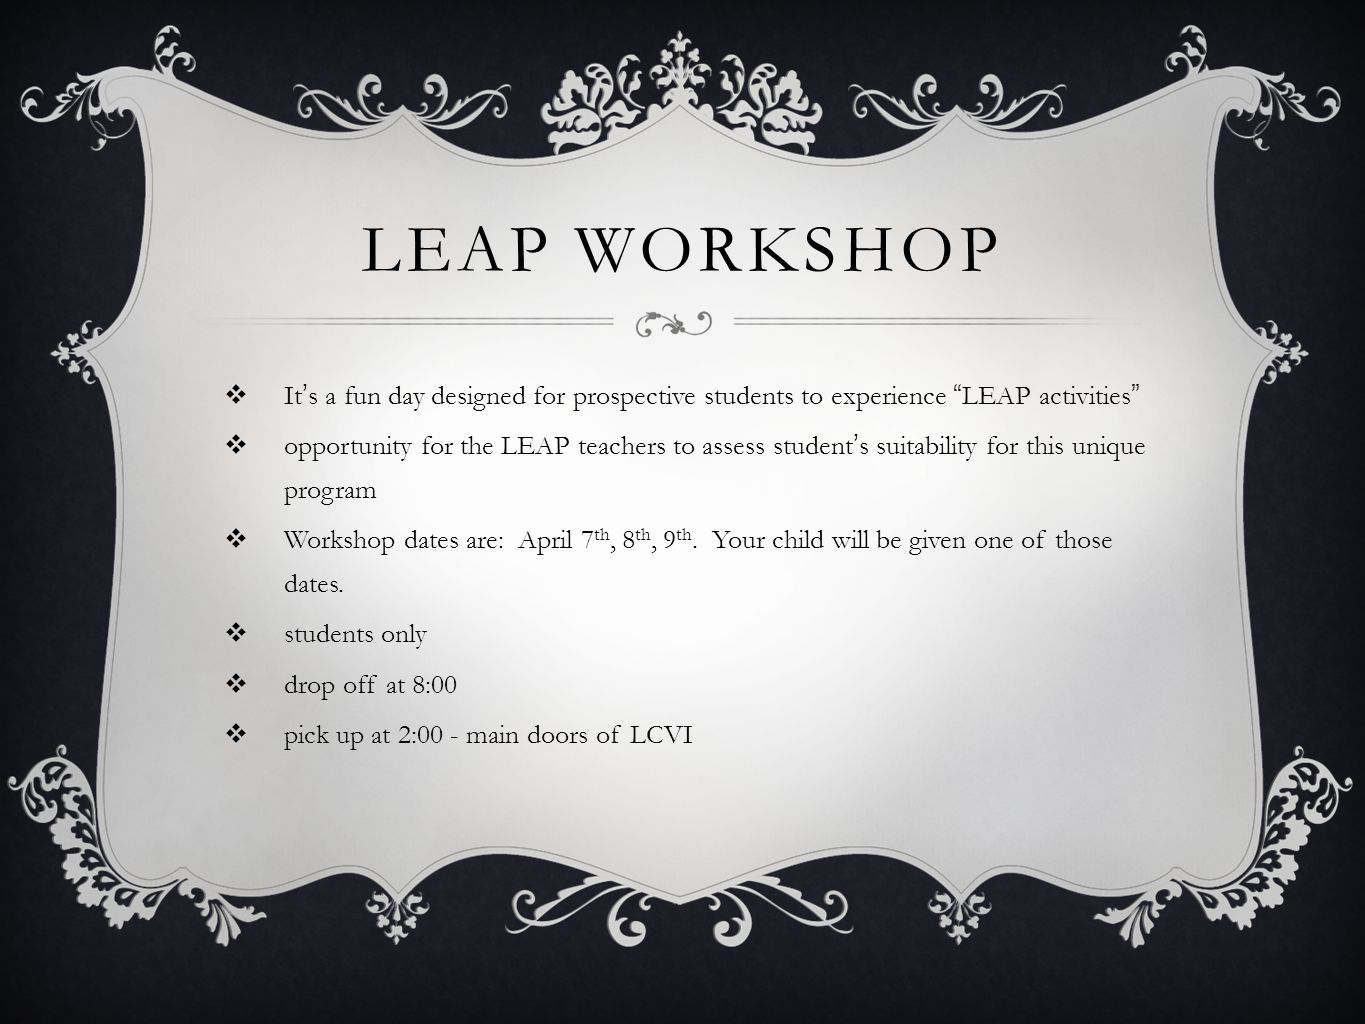 Leap workshop It's a fun day designed for prospective students to experience LEAP activities